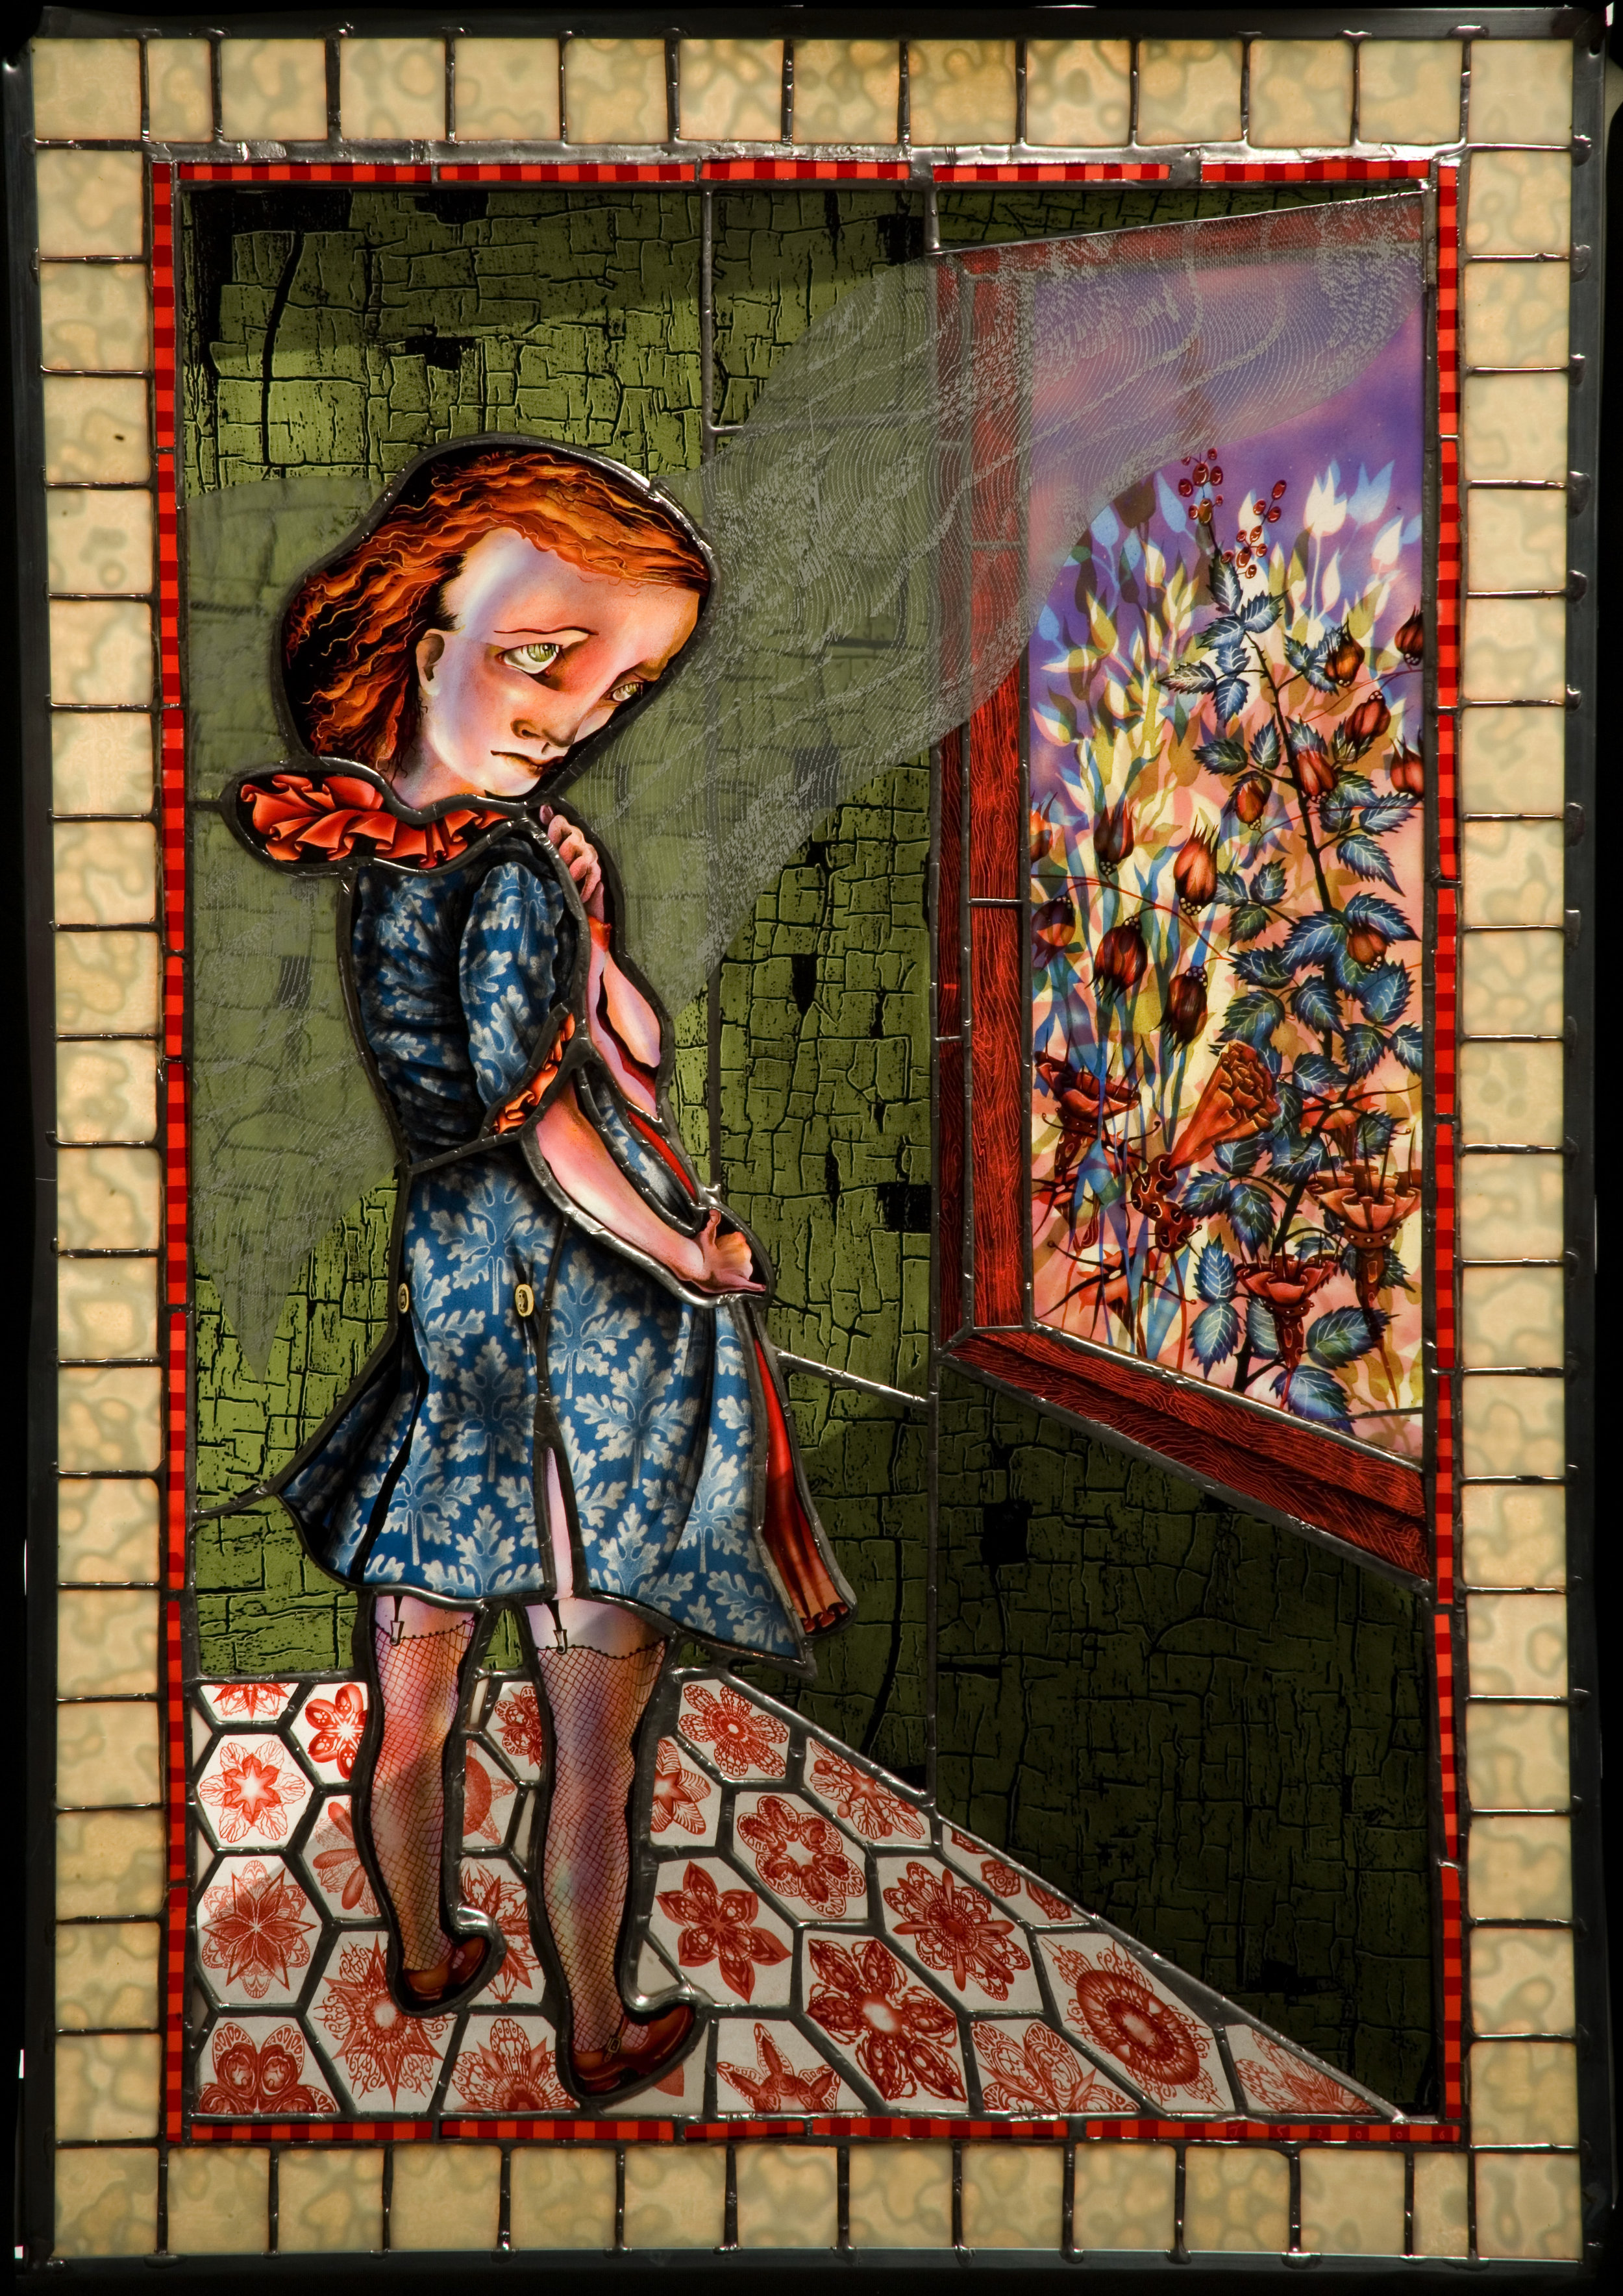 Judith Schaechter (American, born 1961). Flasher,  2006.Stained-glass lightbox;35 13/16 x 25 in. Collection of Museum of Glass, Tacoma, Washington, gift of Albert and Margarita Waxman. Photo by Dominic Episcopo, courtesy of the artist